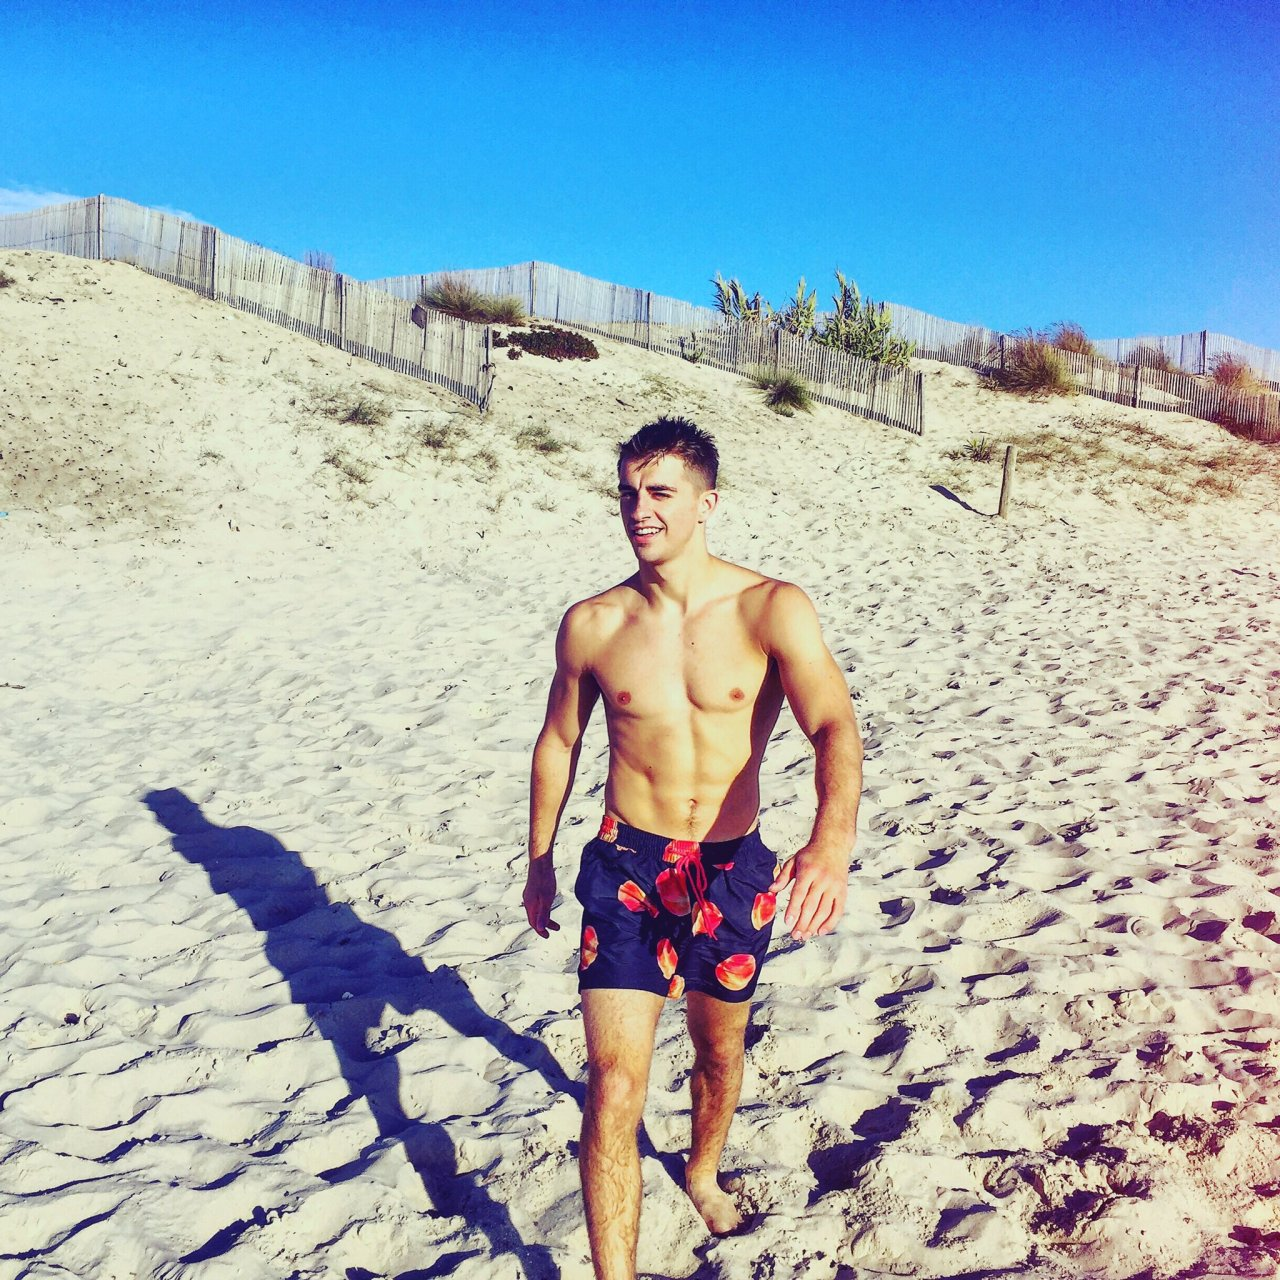 adorable-twink-boy-beach-sun-shirtless